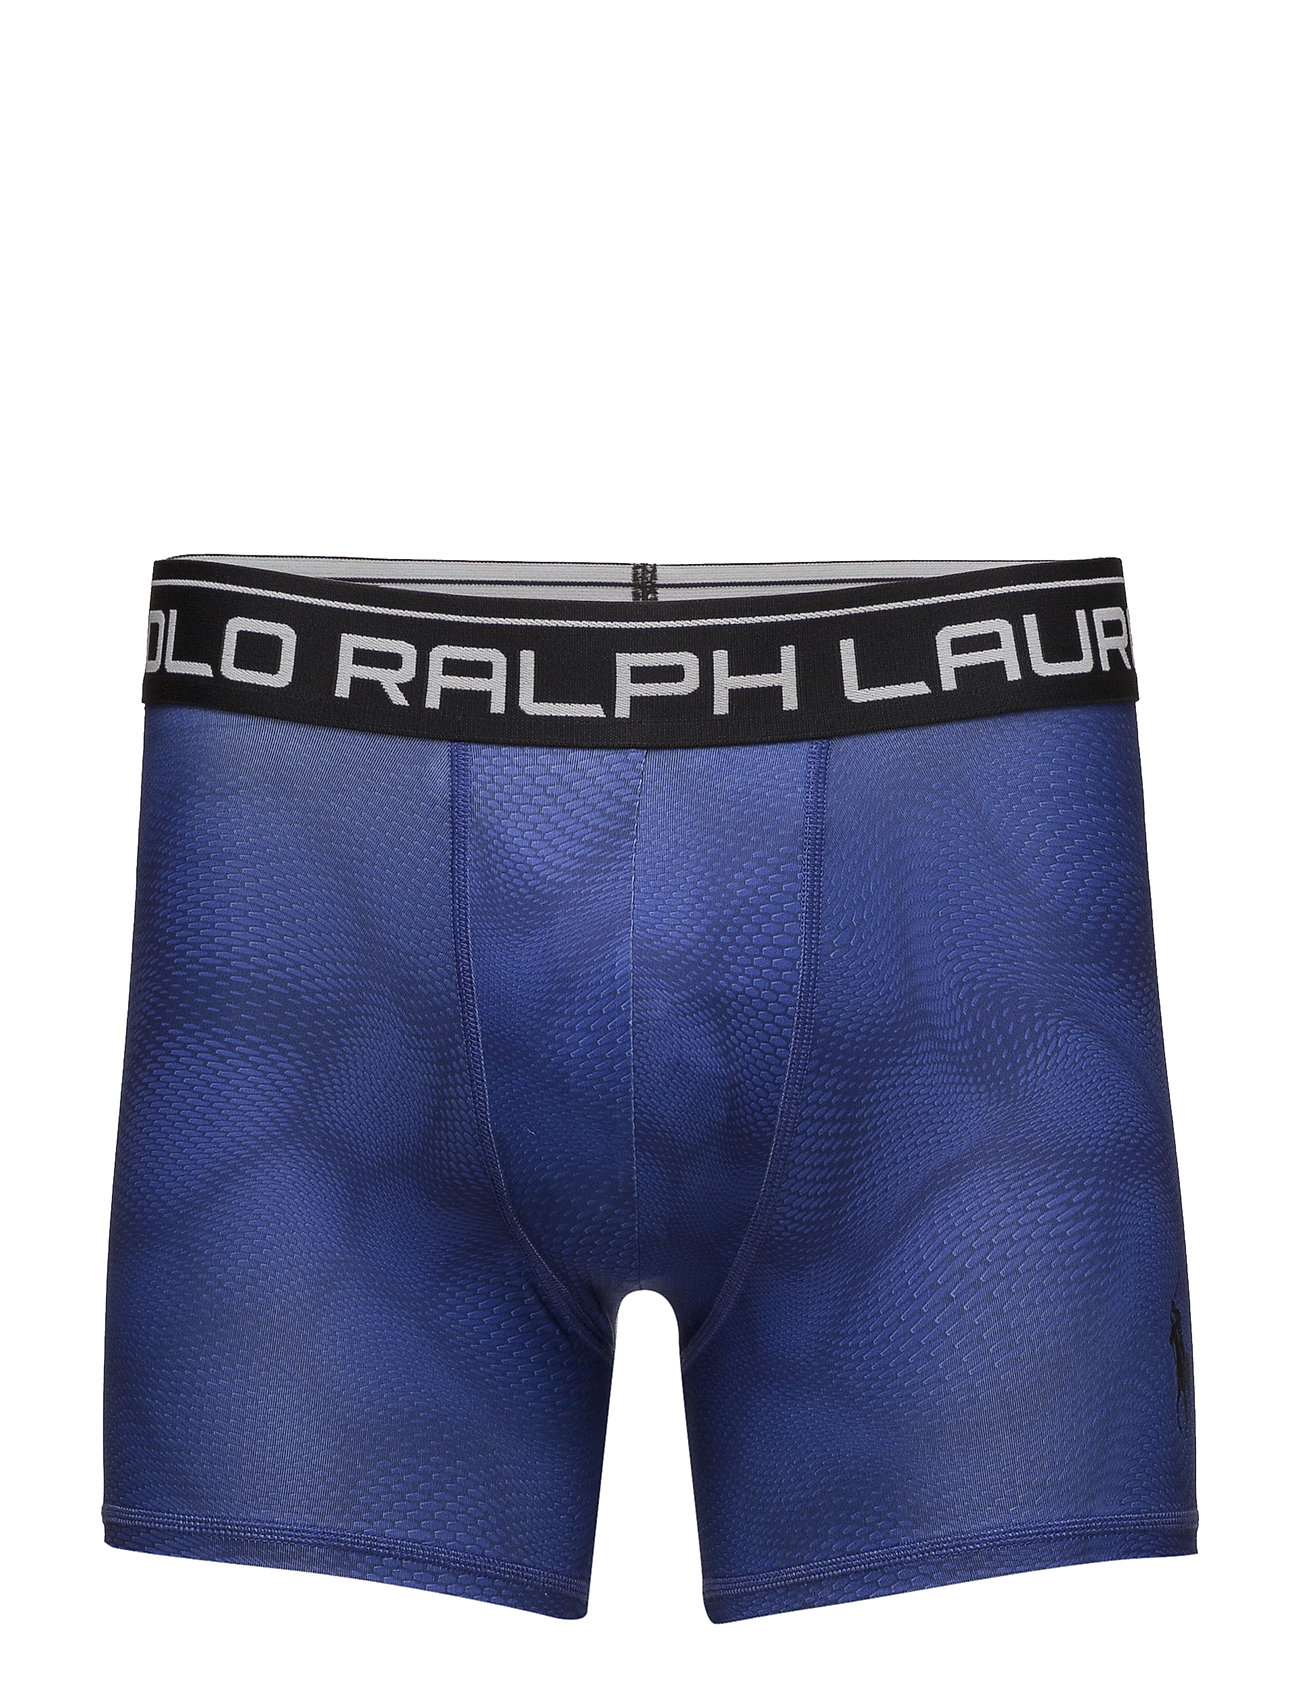 Polo Ralph Lauren Underwear Brushed Microfiber Boxer Brief - PACIFIC ROYAL HEX